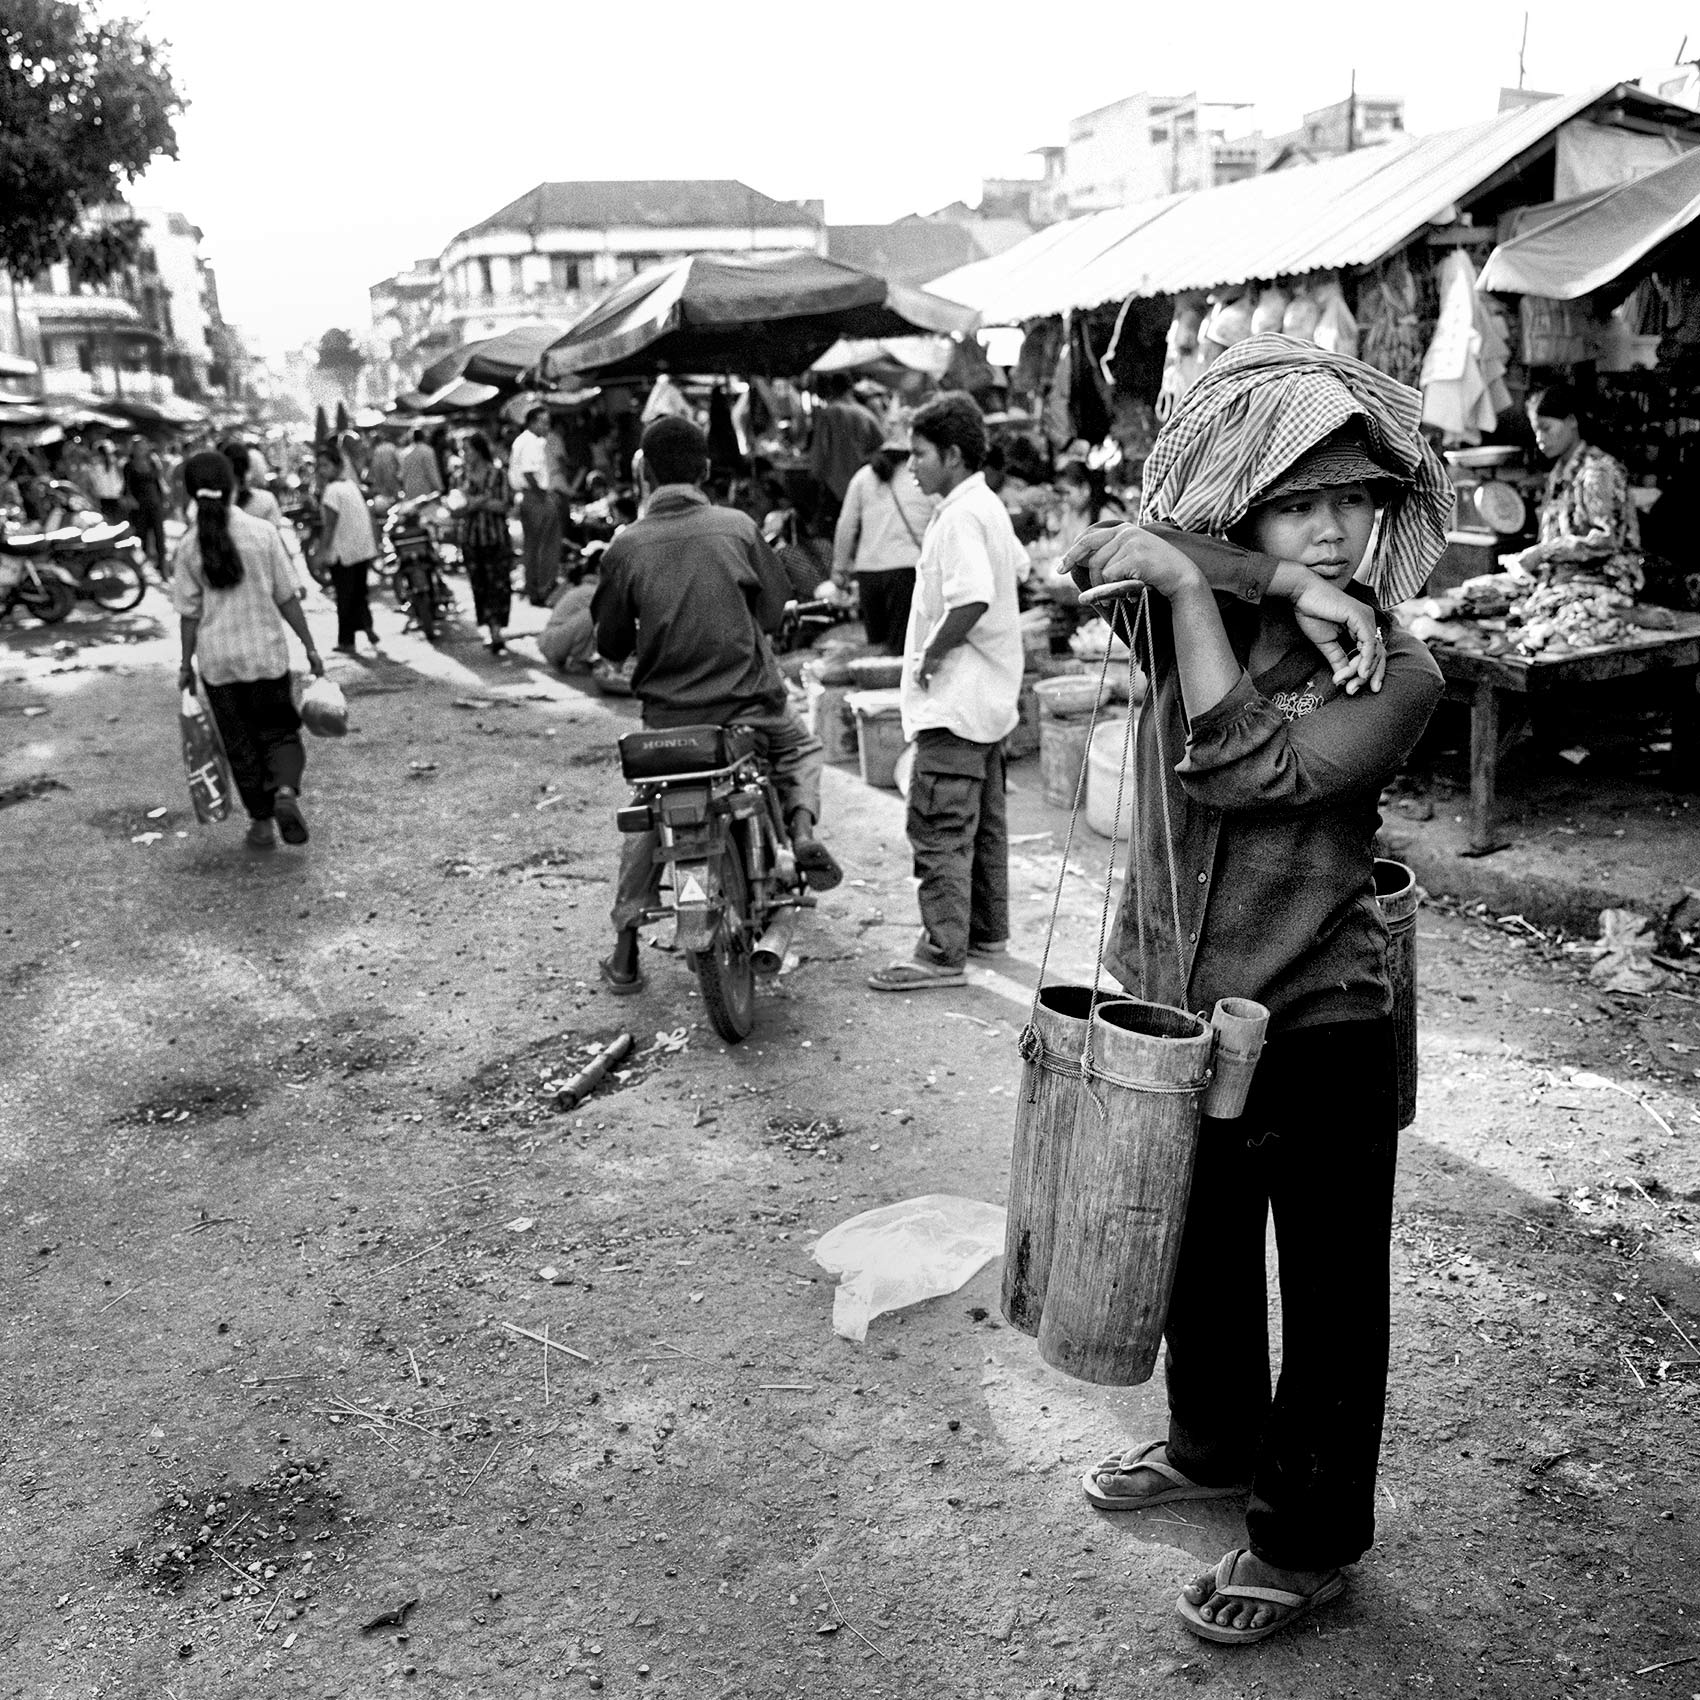 a-woman-in-an-outdoor-market-takes-a-break-from-selling-water-in-phnom-penh-cambodia